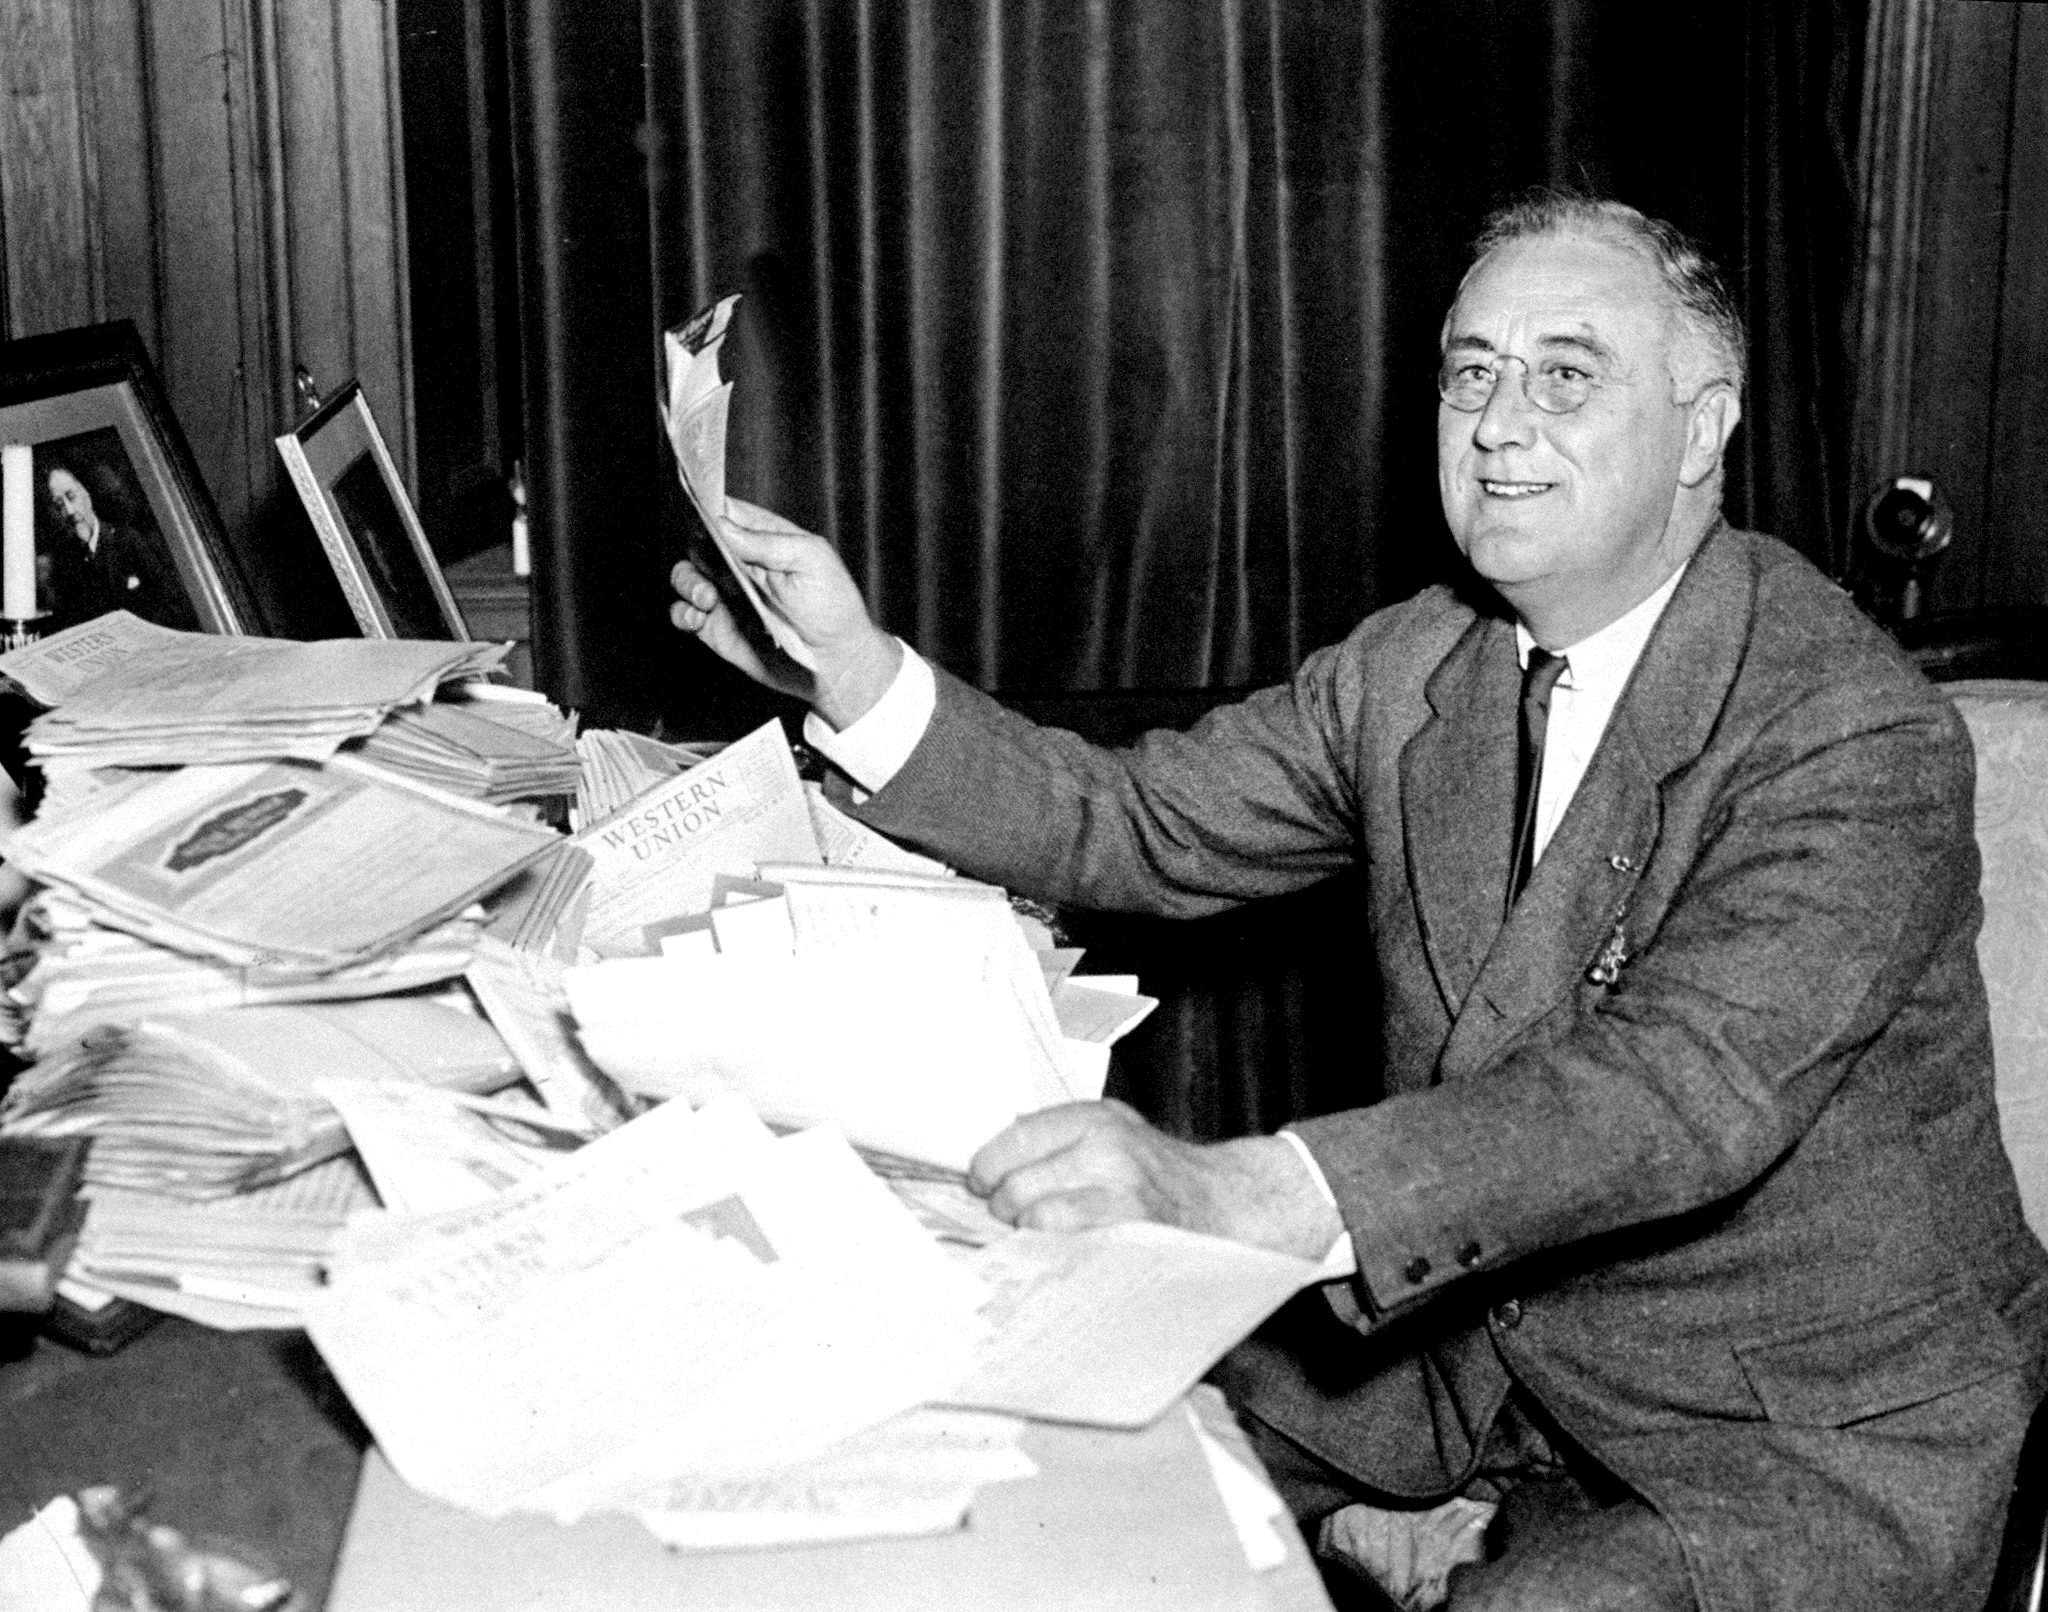 President Franklin D. Roosevelt reads congratulatory telegrams on Nov. 4, 1936, after re-election victory over Alfred Landon.